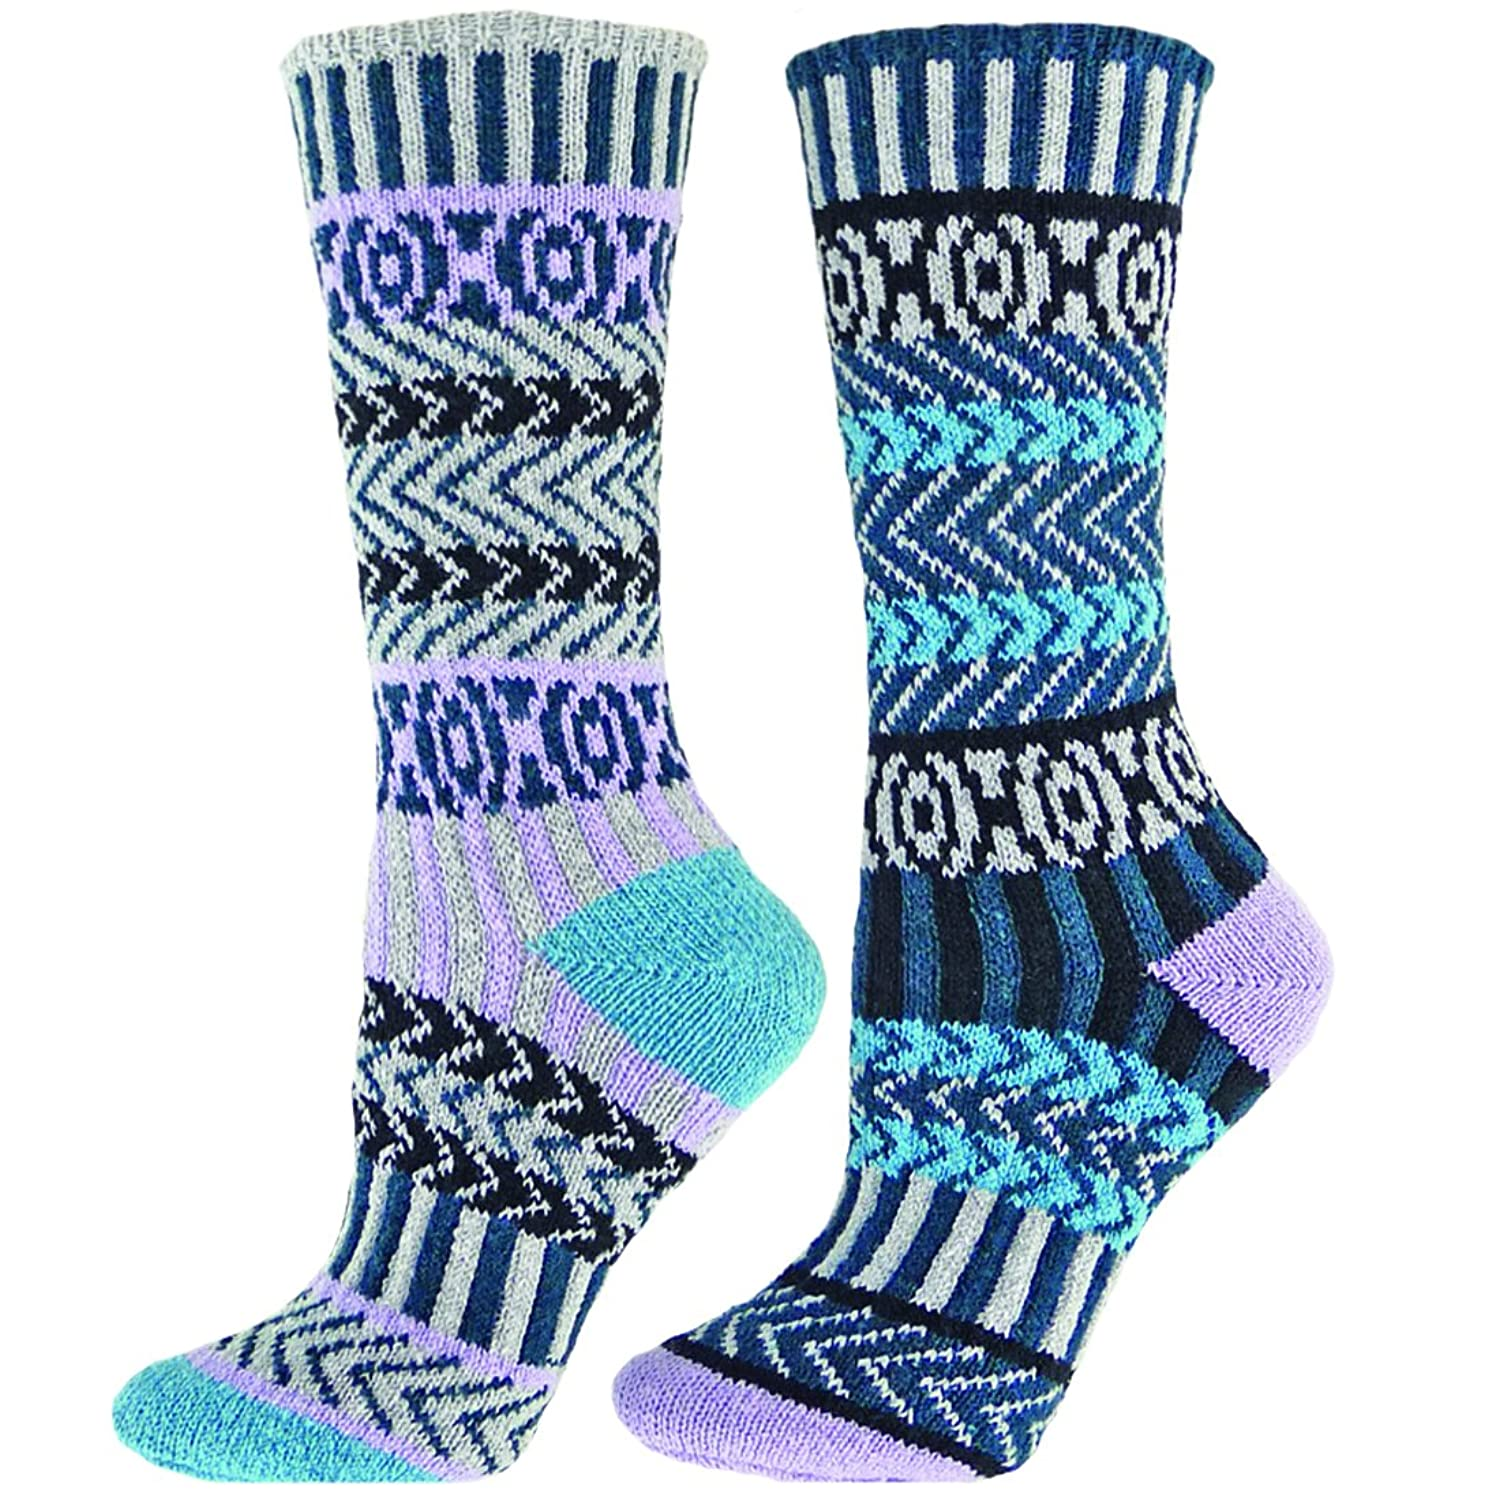 Qt feet Mismatch Squiggle Crew Recycled Cotton